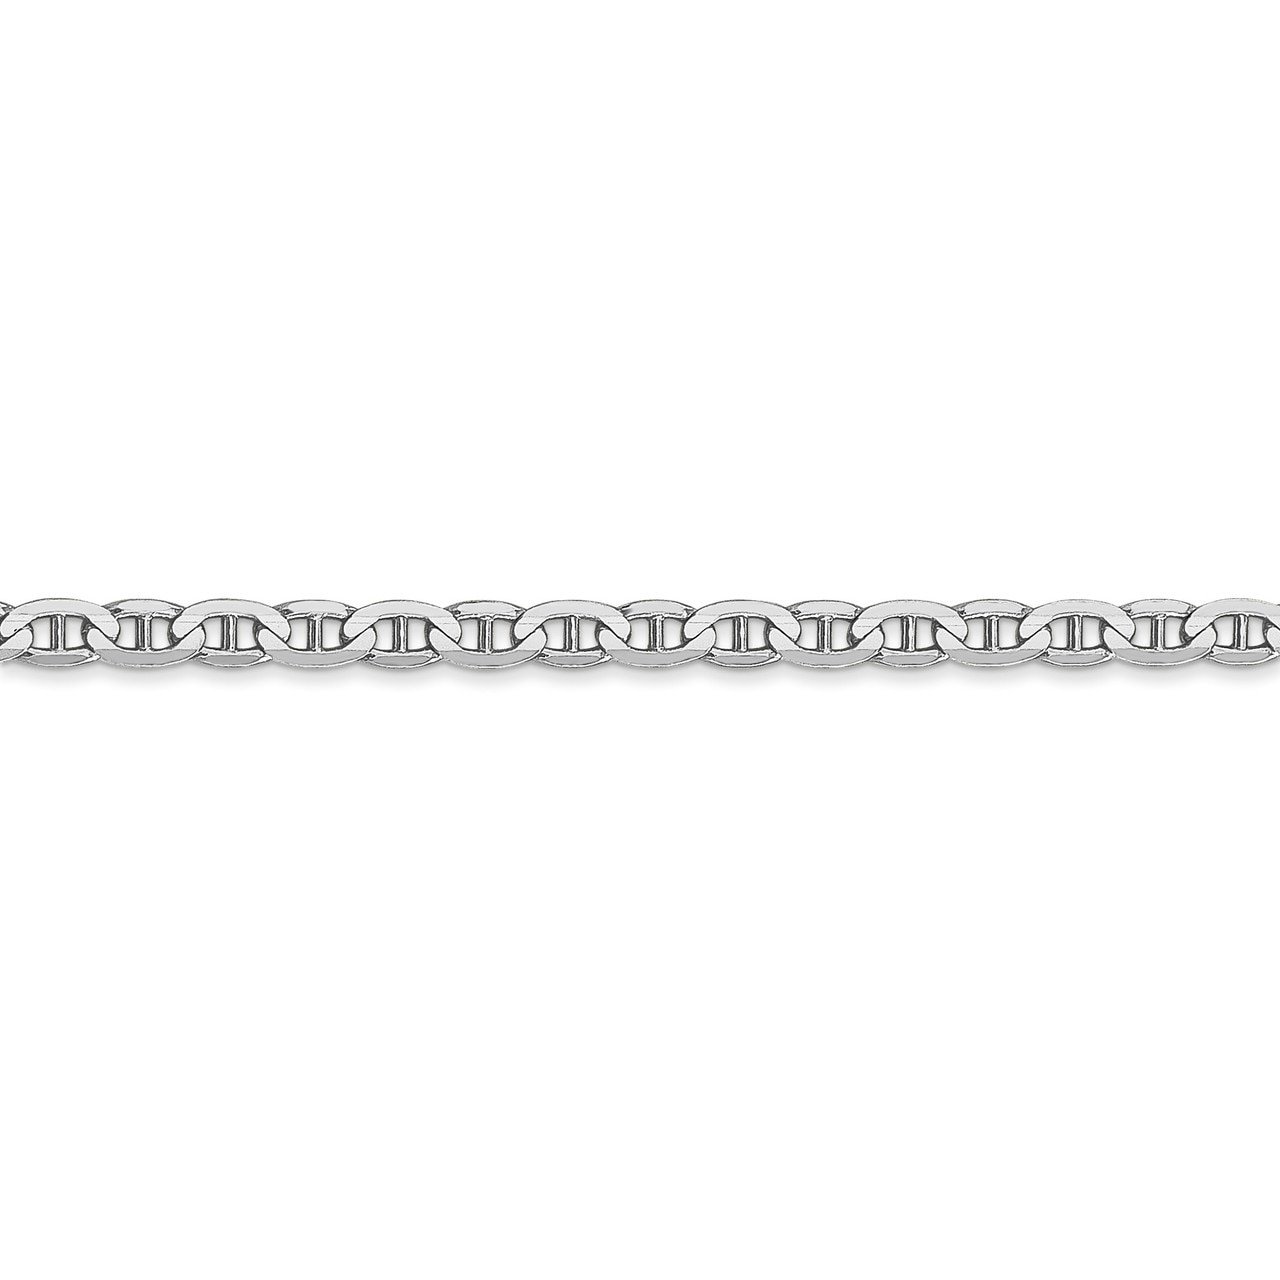 Lex /& Lu 14k White Gold 3mm Anchor Link Chain Necklace or Bracelet